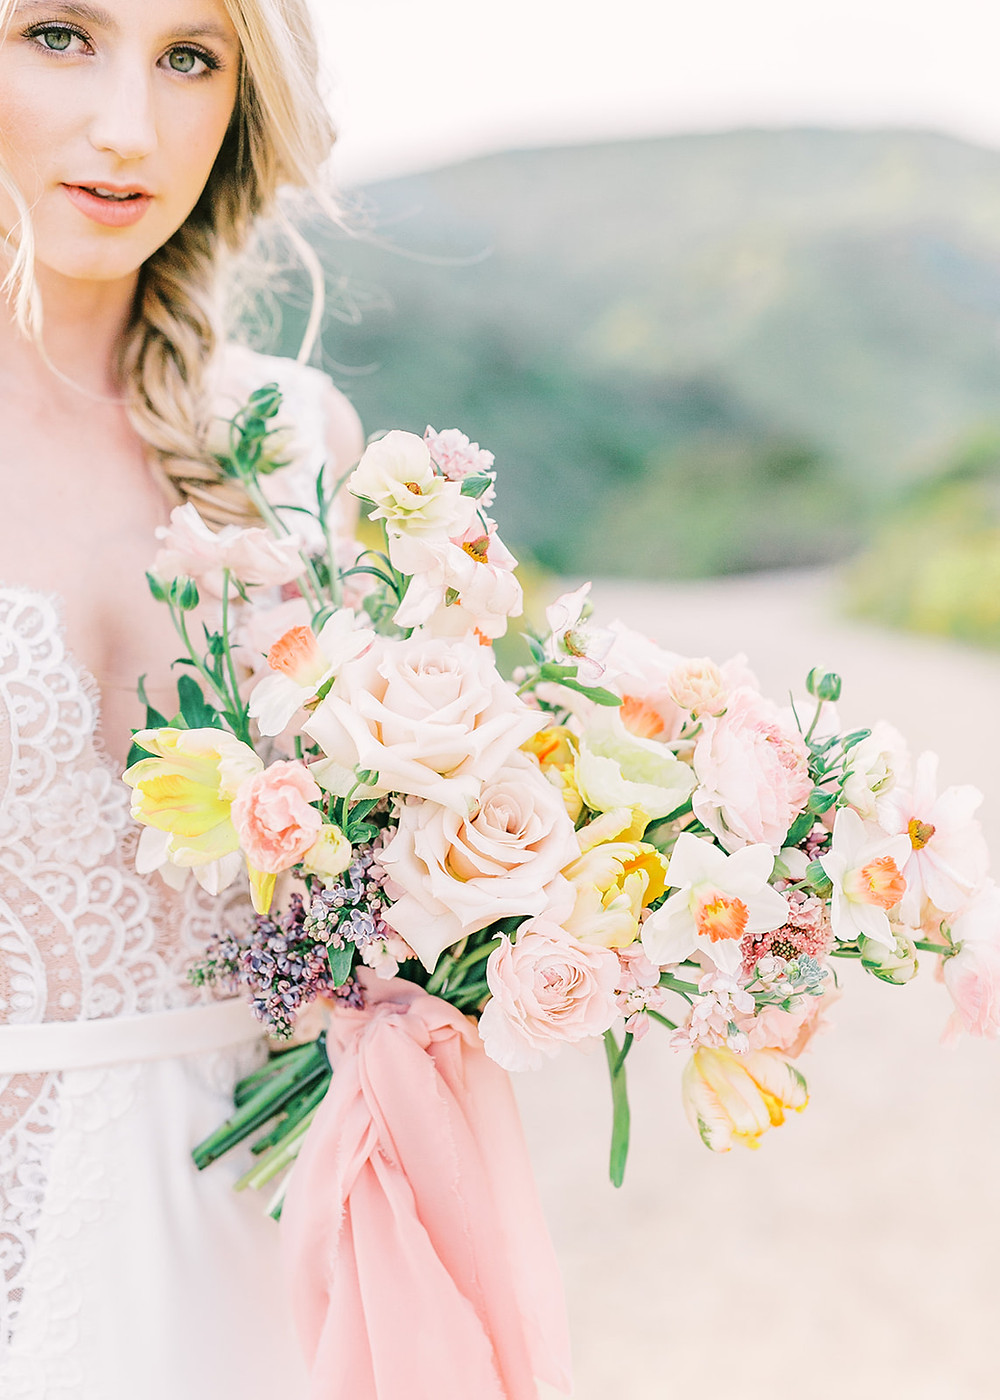 Spring micro wedding/elopement flowers setup in at Mission Trails in San Diego, California. Amongst the best places to elope in San Diego. Using vibrant and bright wedding flowers to create an intentional ceremony setup by Southern Californian Florist Le Champagne Projects. Photography by fine art film photographer Mandy Ford